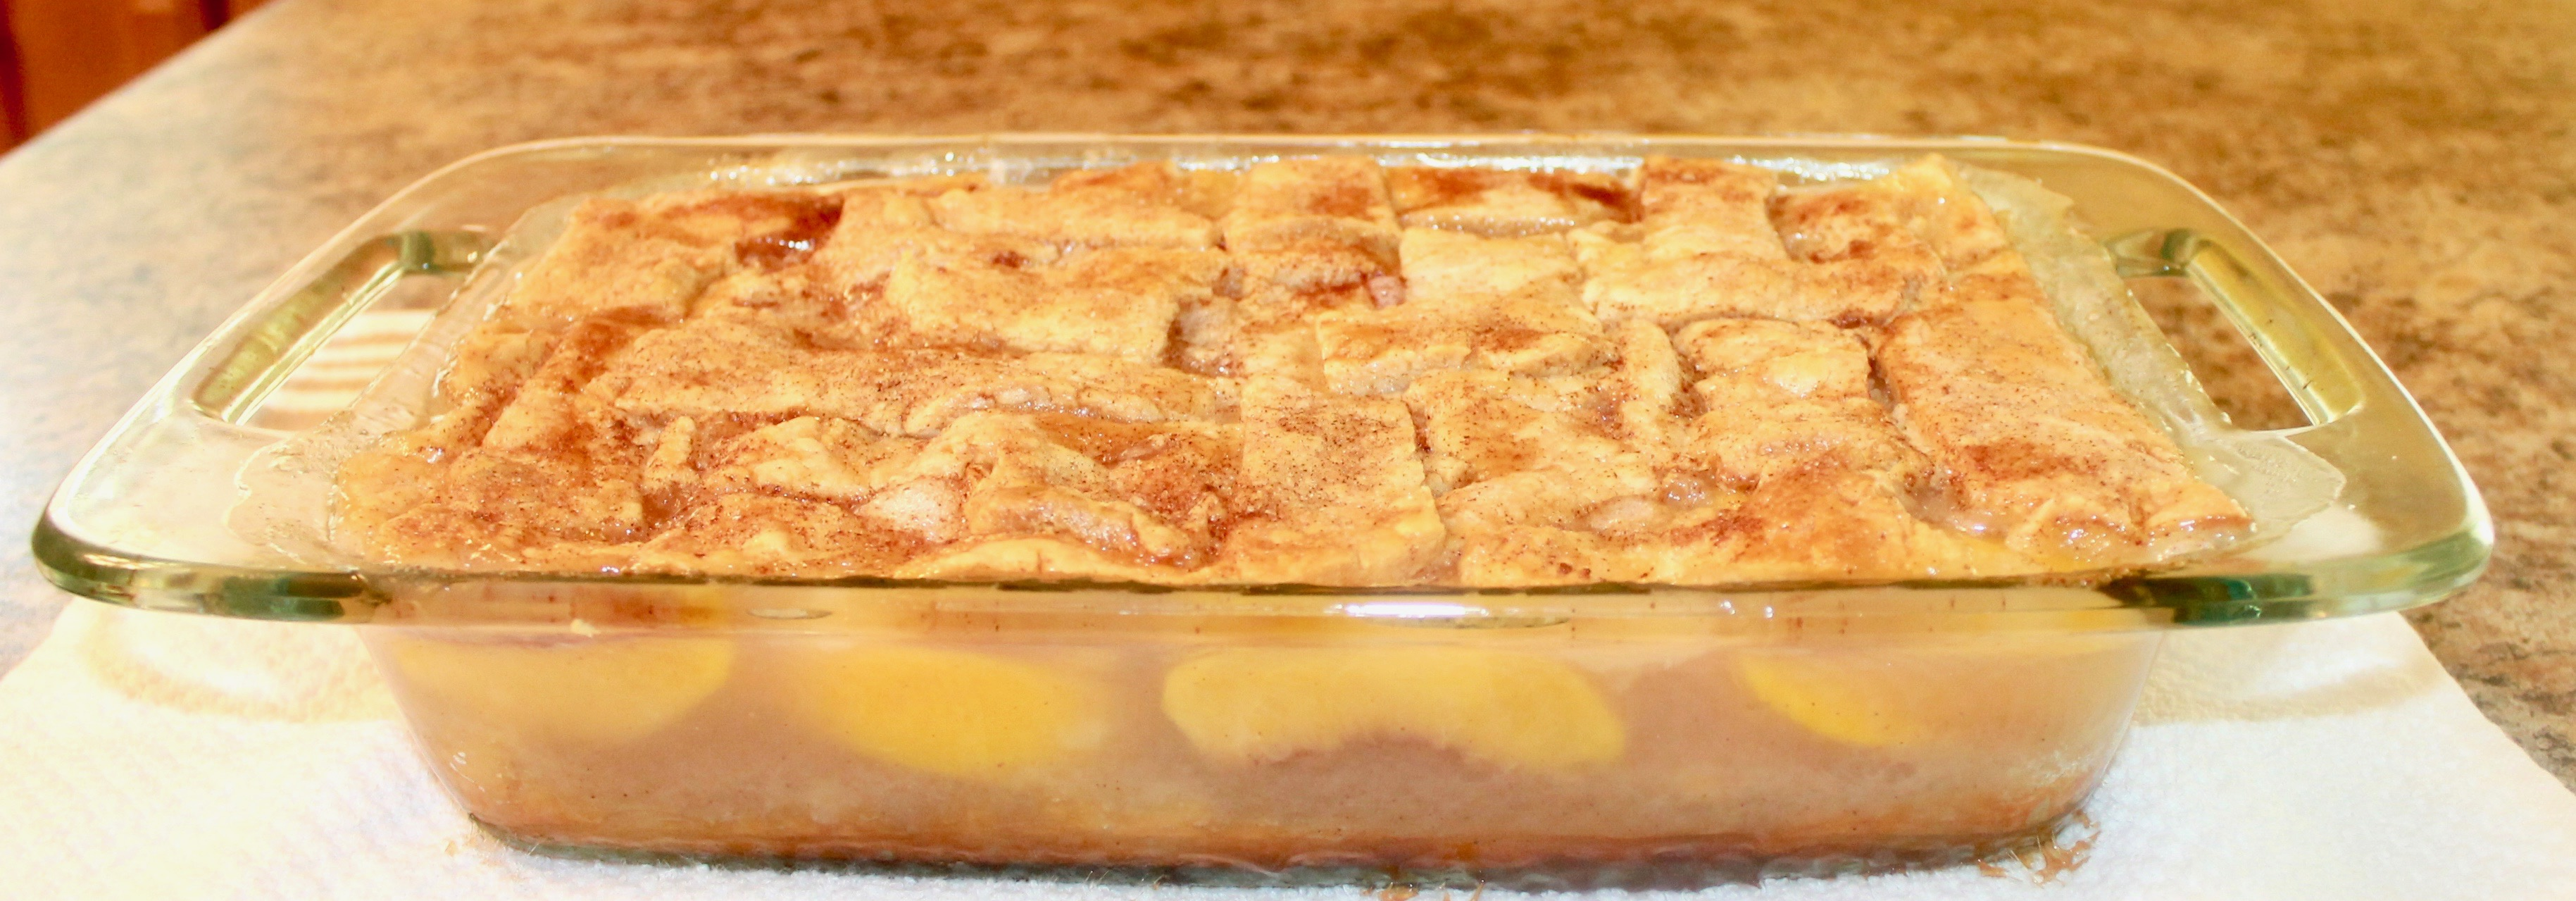 How to make a peach cobbler from scratch